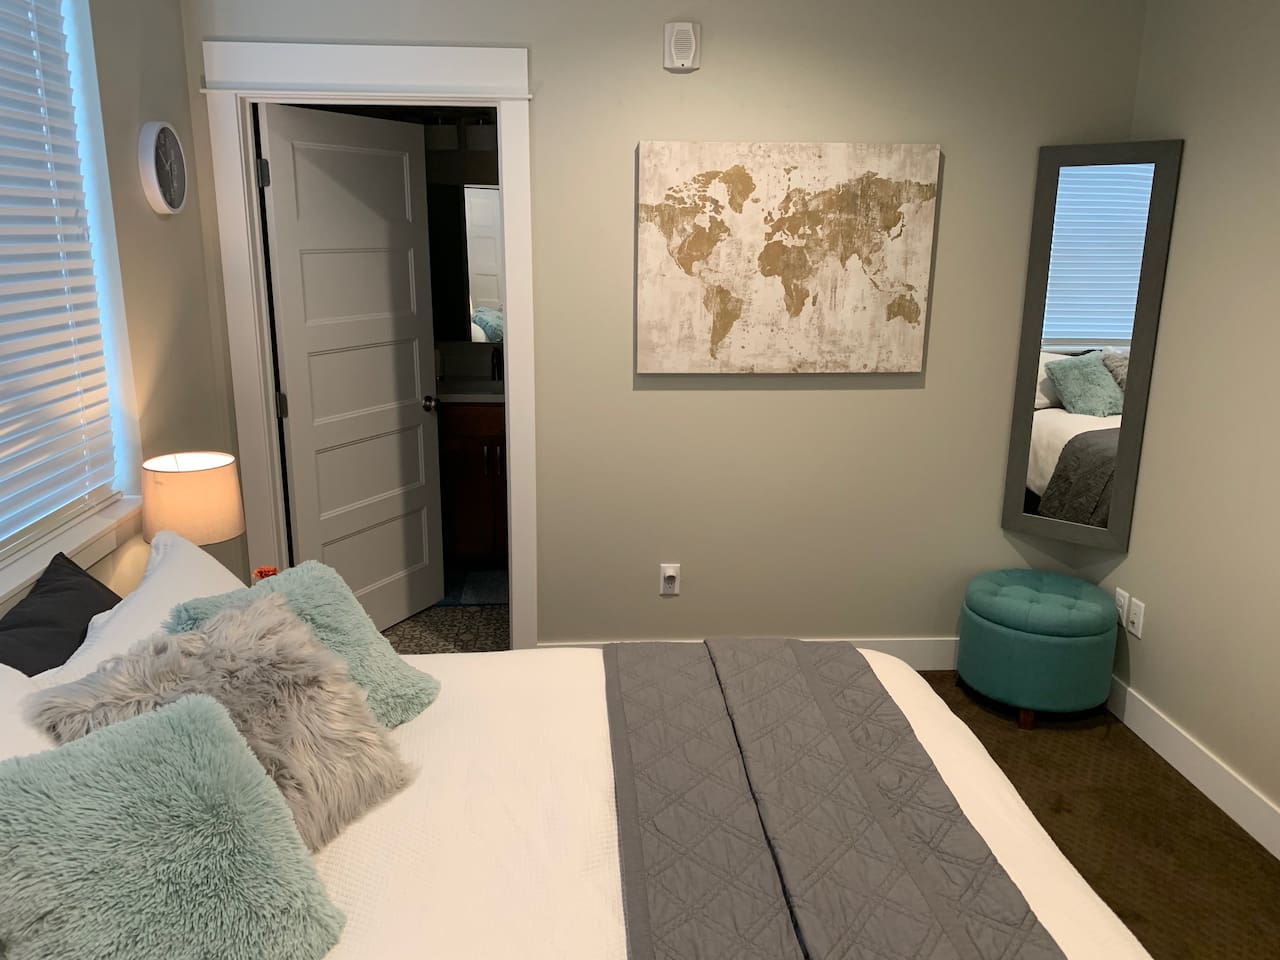 In the master bedroom you'll sleep in comfort with a down duvet and your choice of both down and feather pillows. A cot gives you the option of another single mattress. Want privacy or more room? Book the full two-bedroom suite with the bunk room!